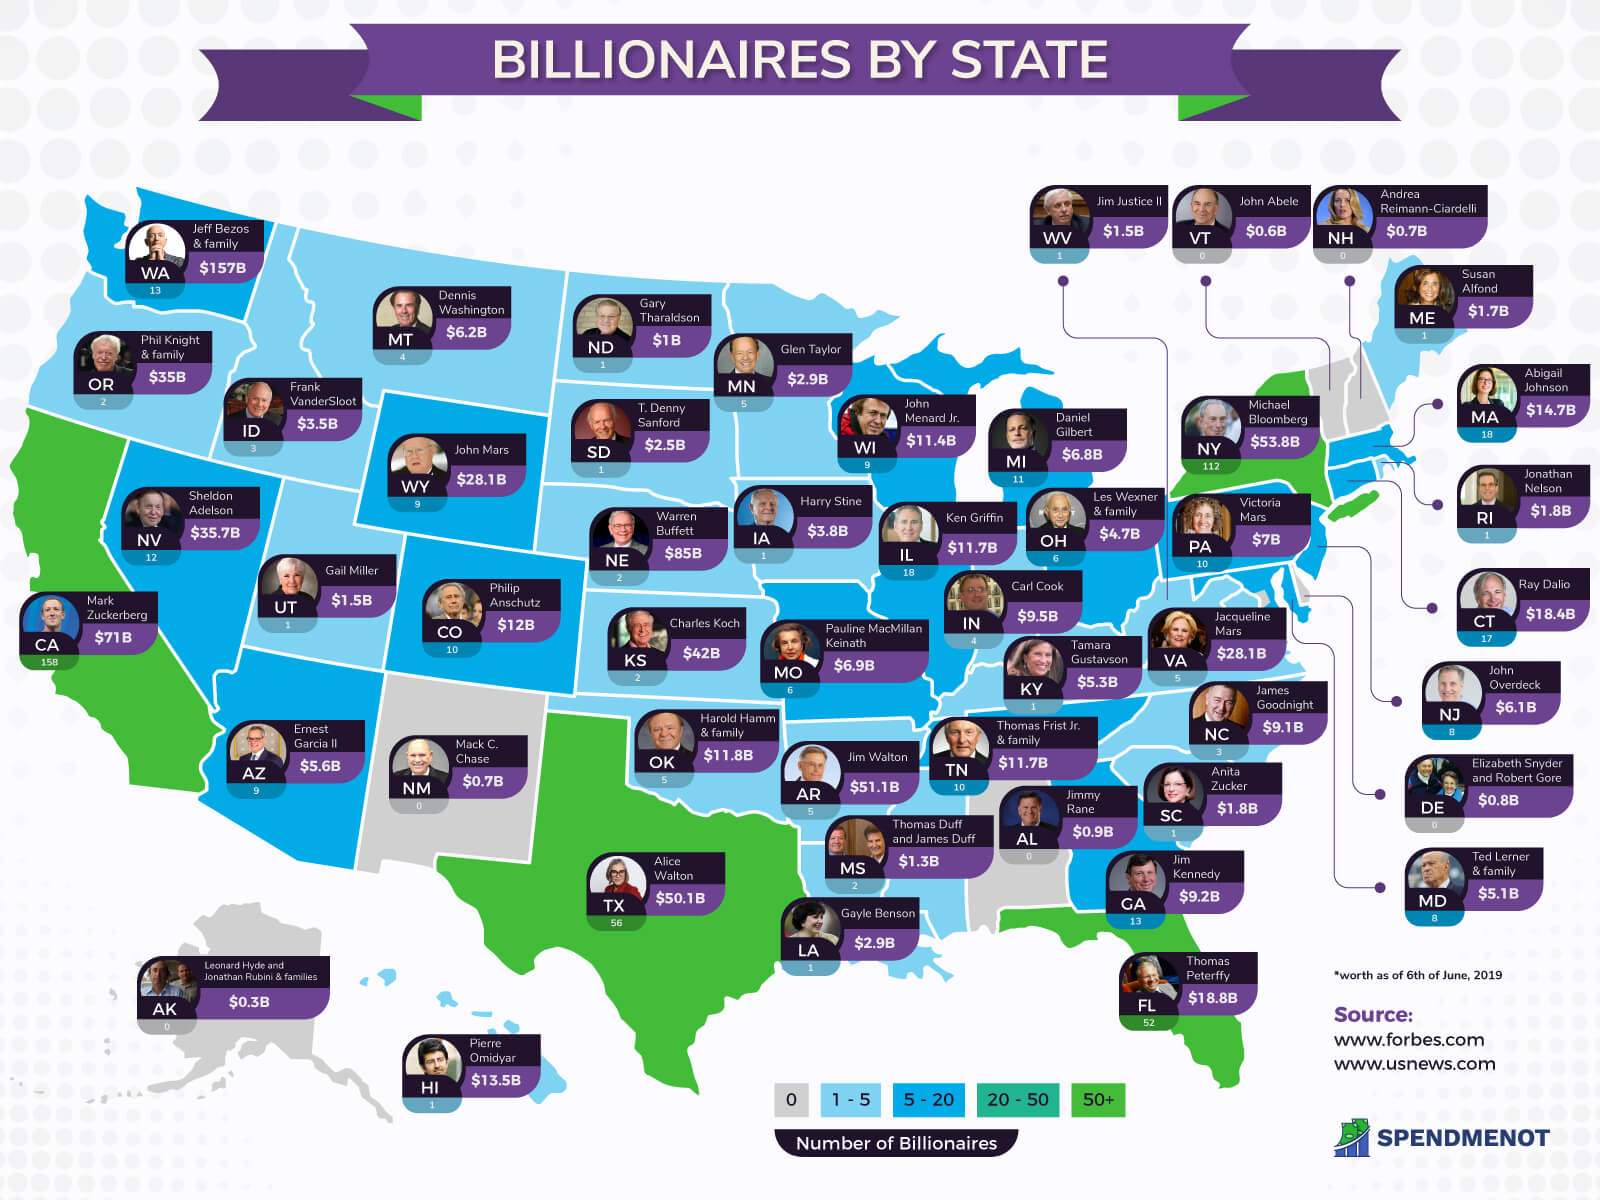 Billionaires by State - A Map